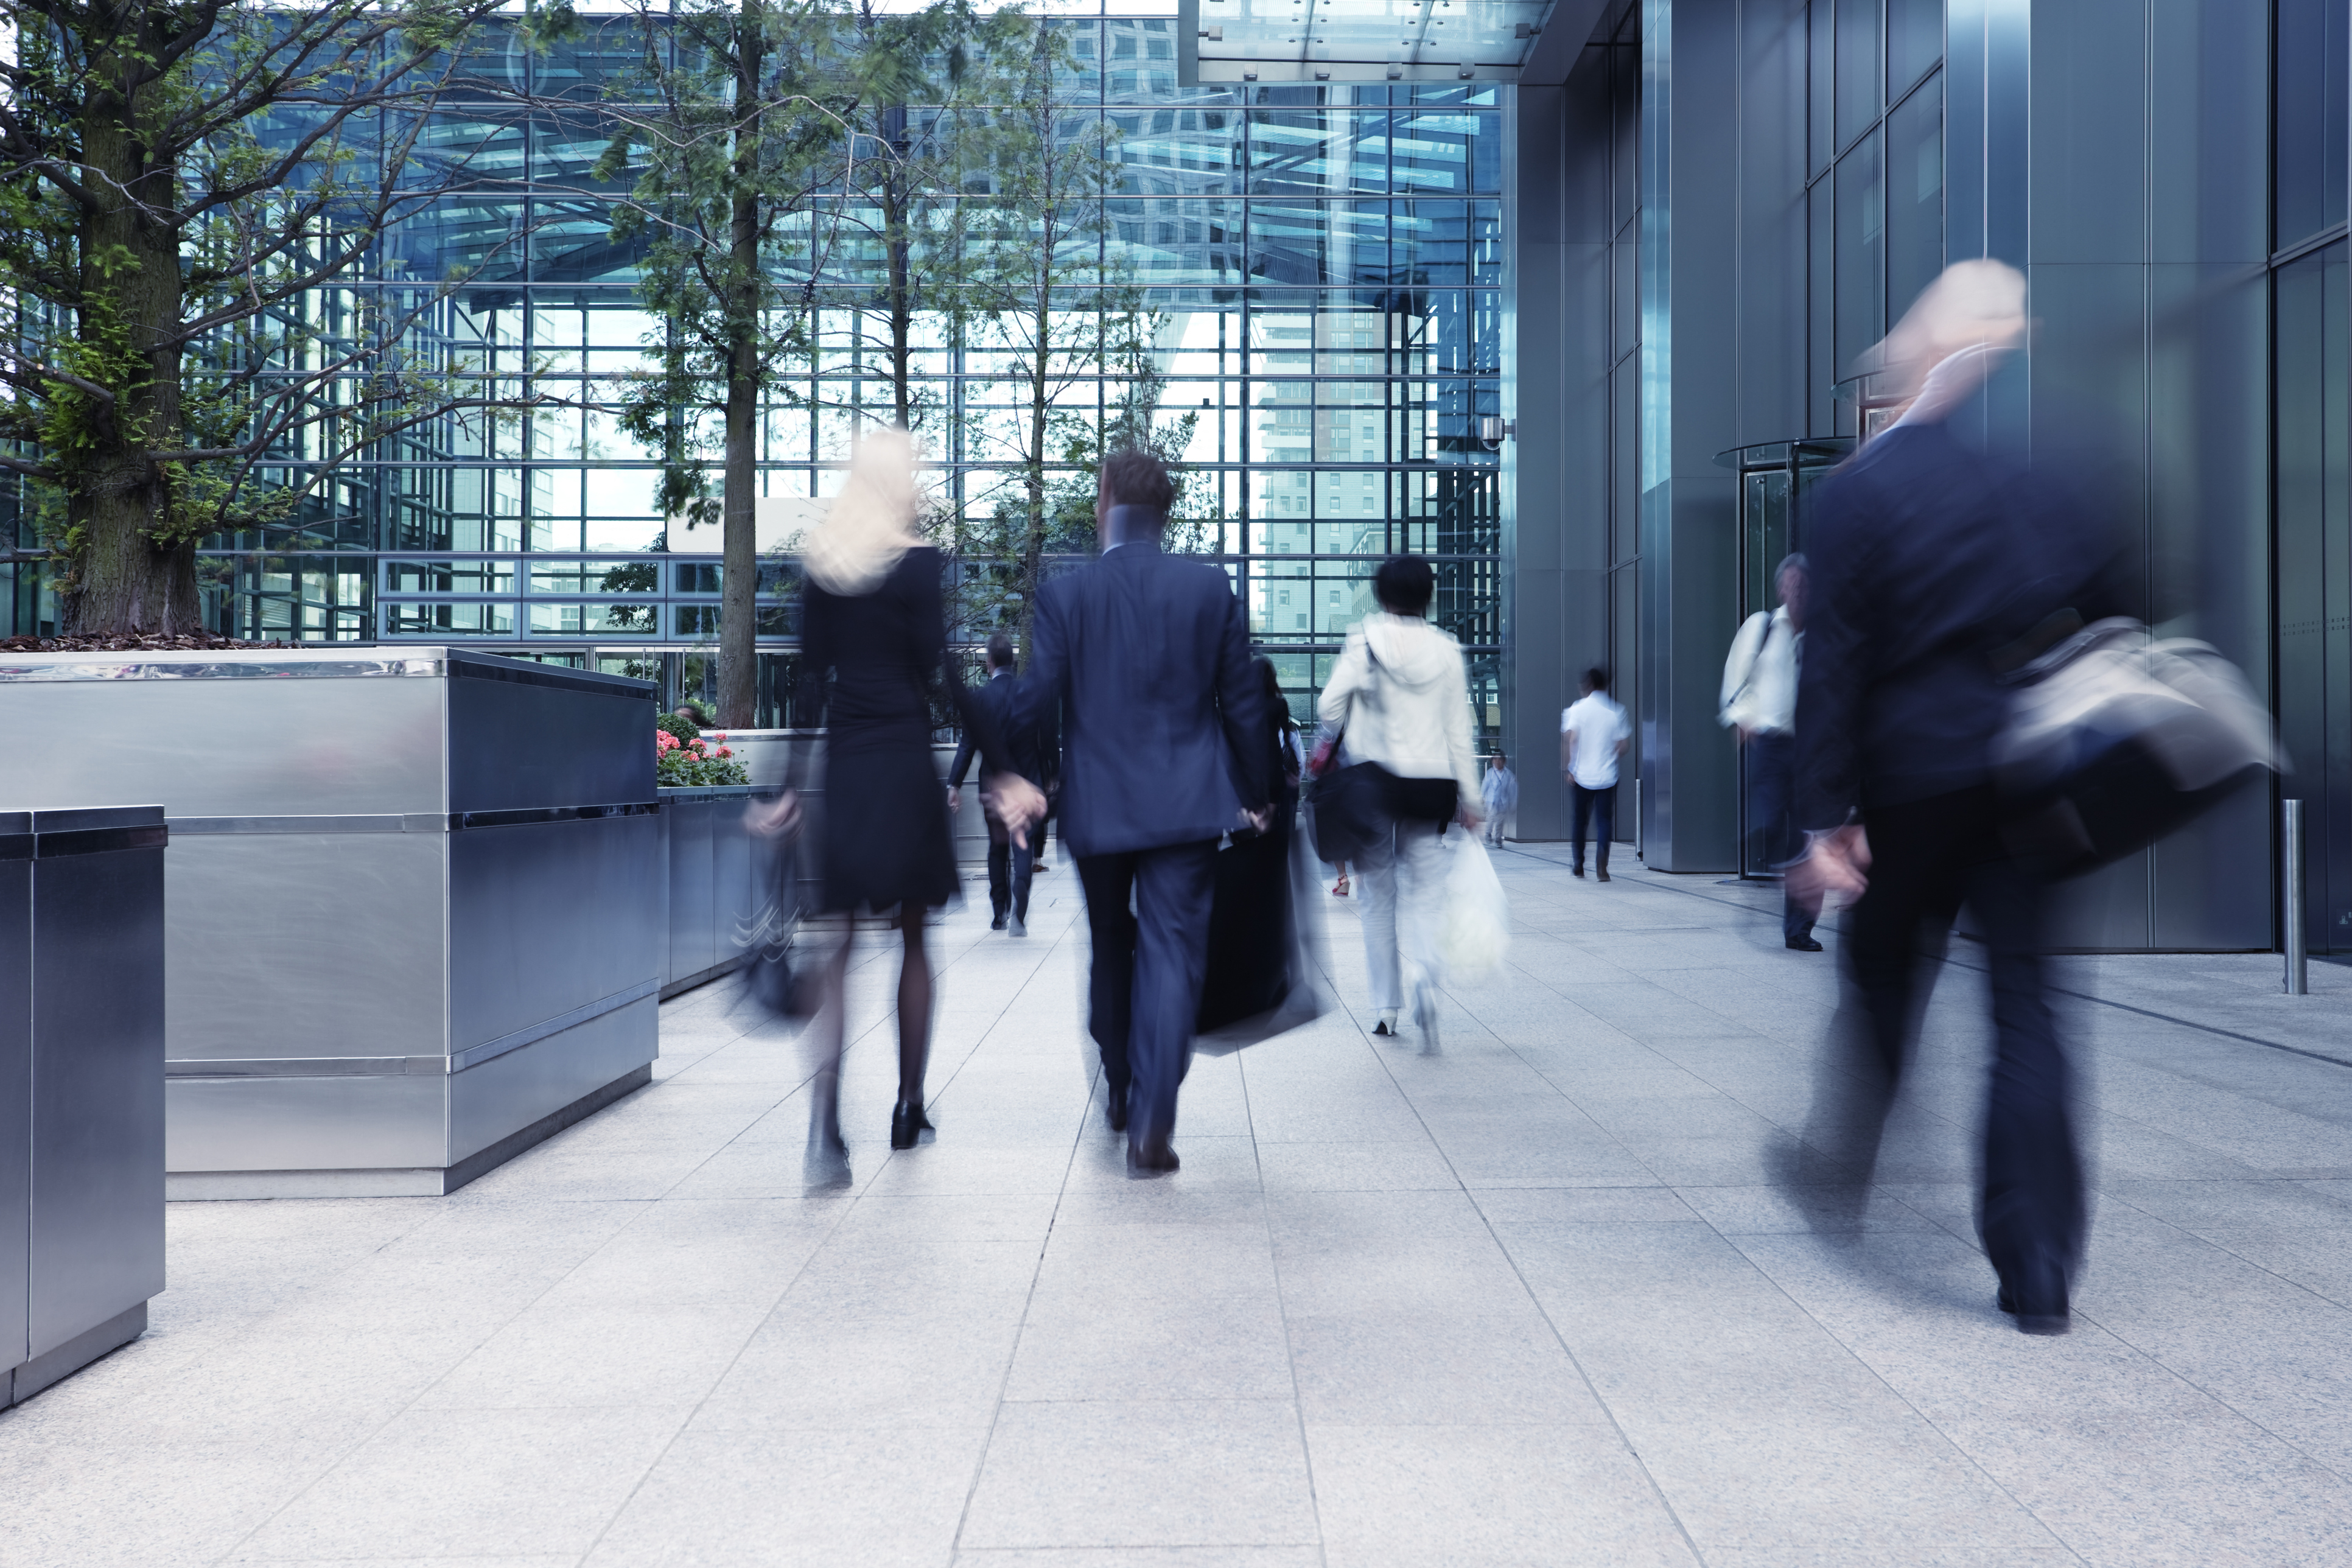 iStock-corporate blur building people going to work executive glass